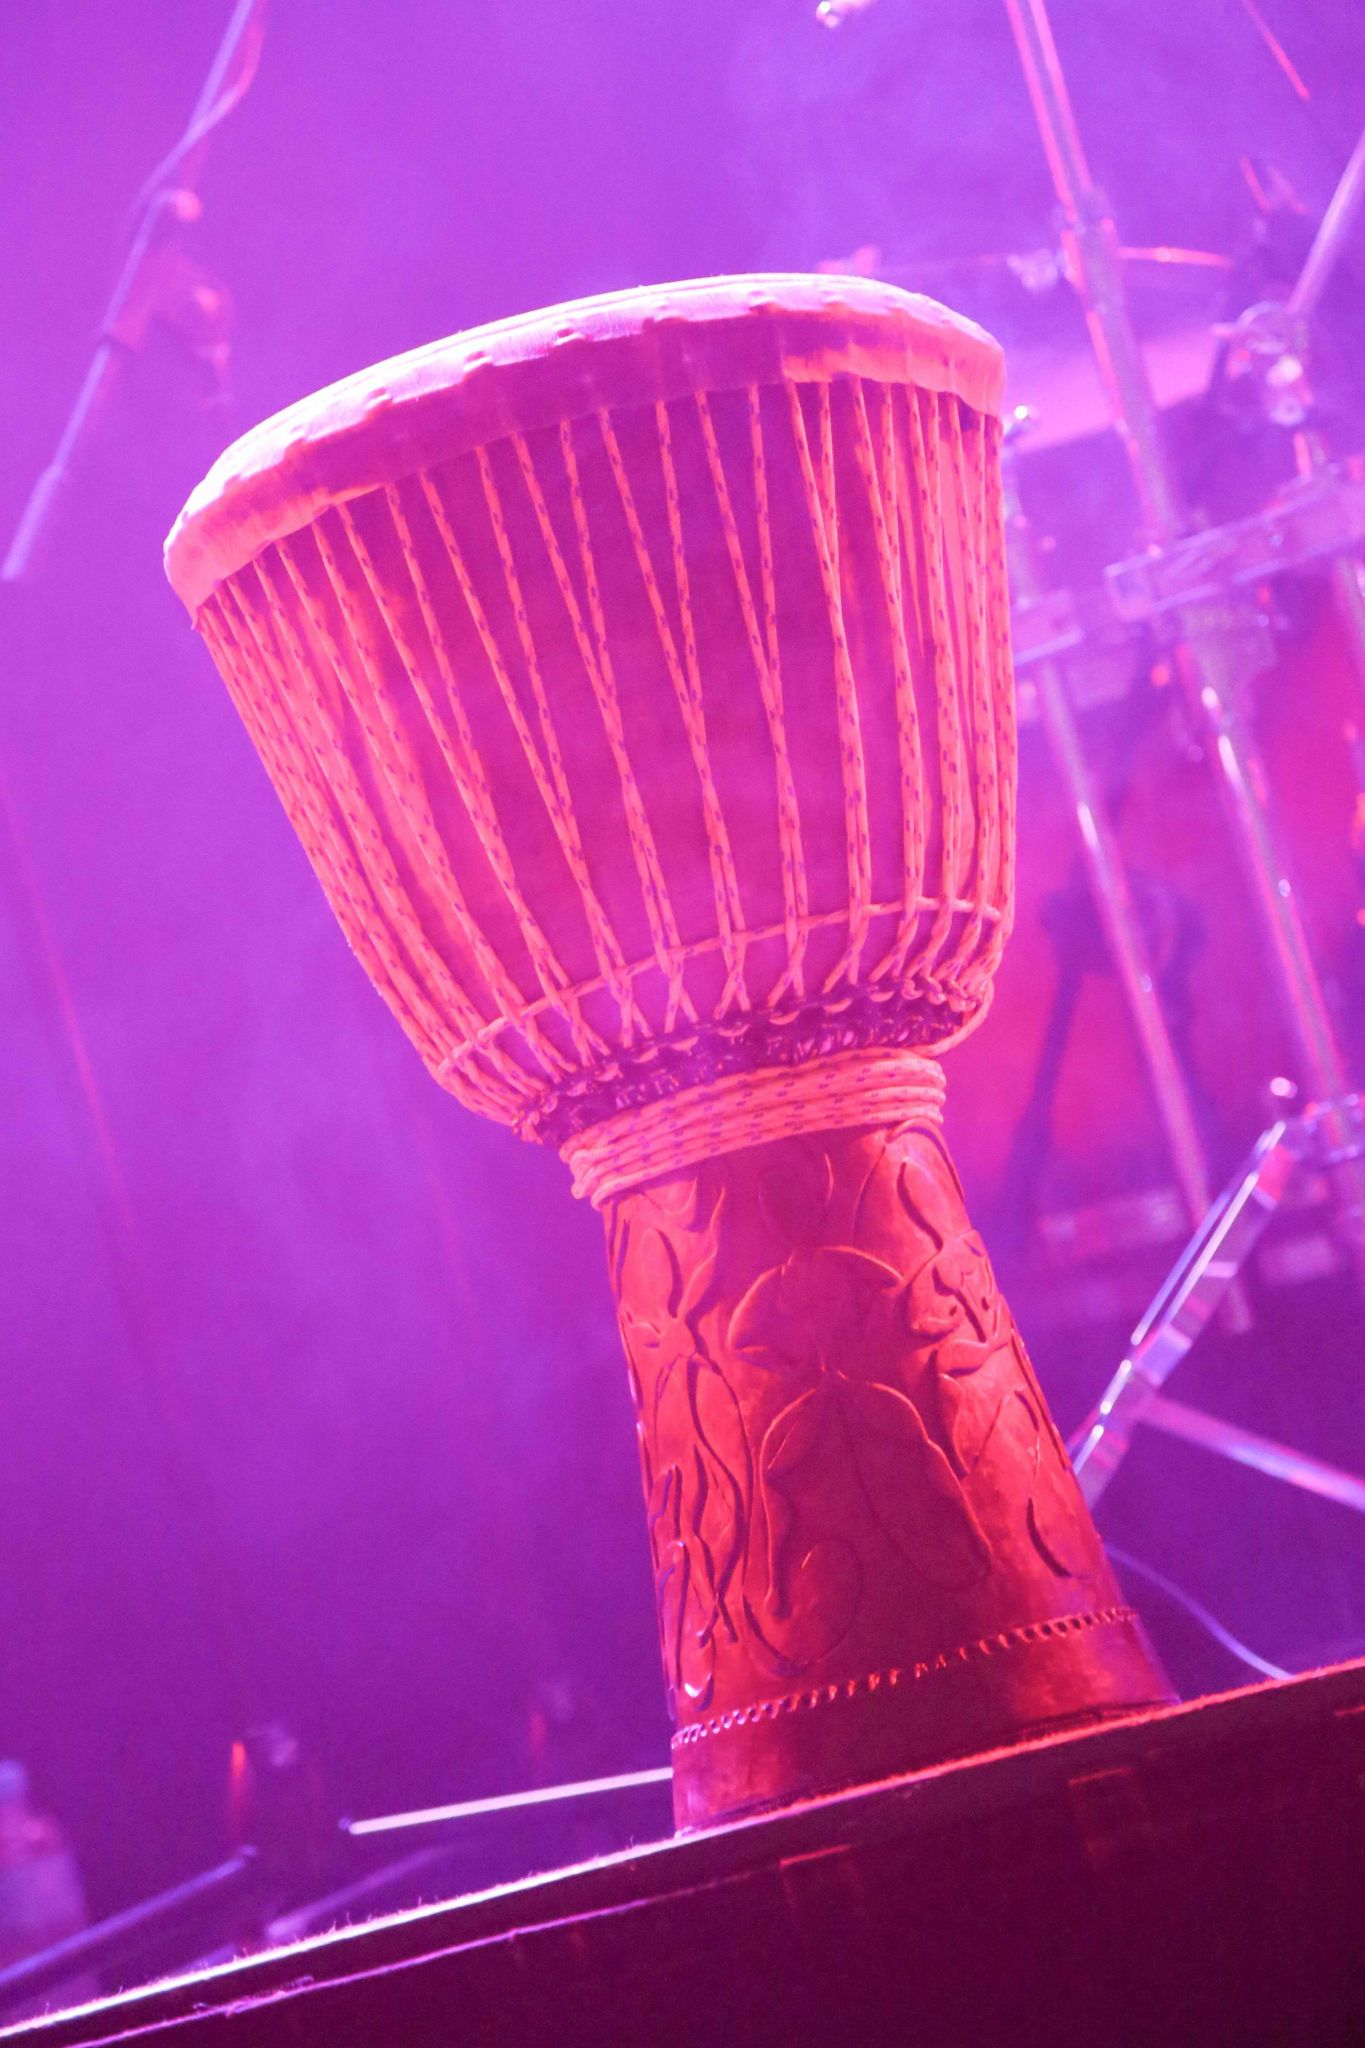 Djembe for African drumming performance